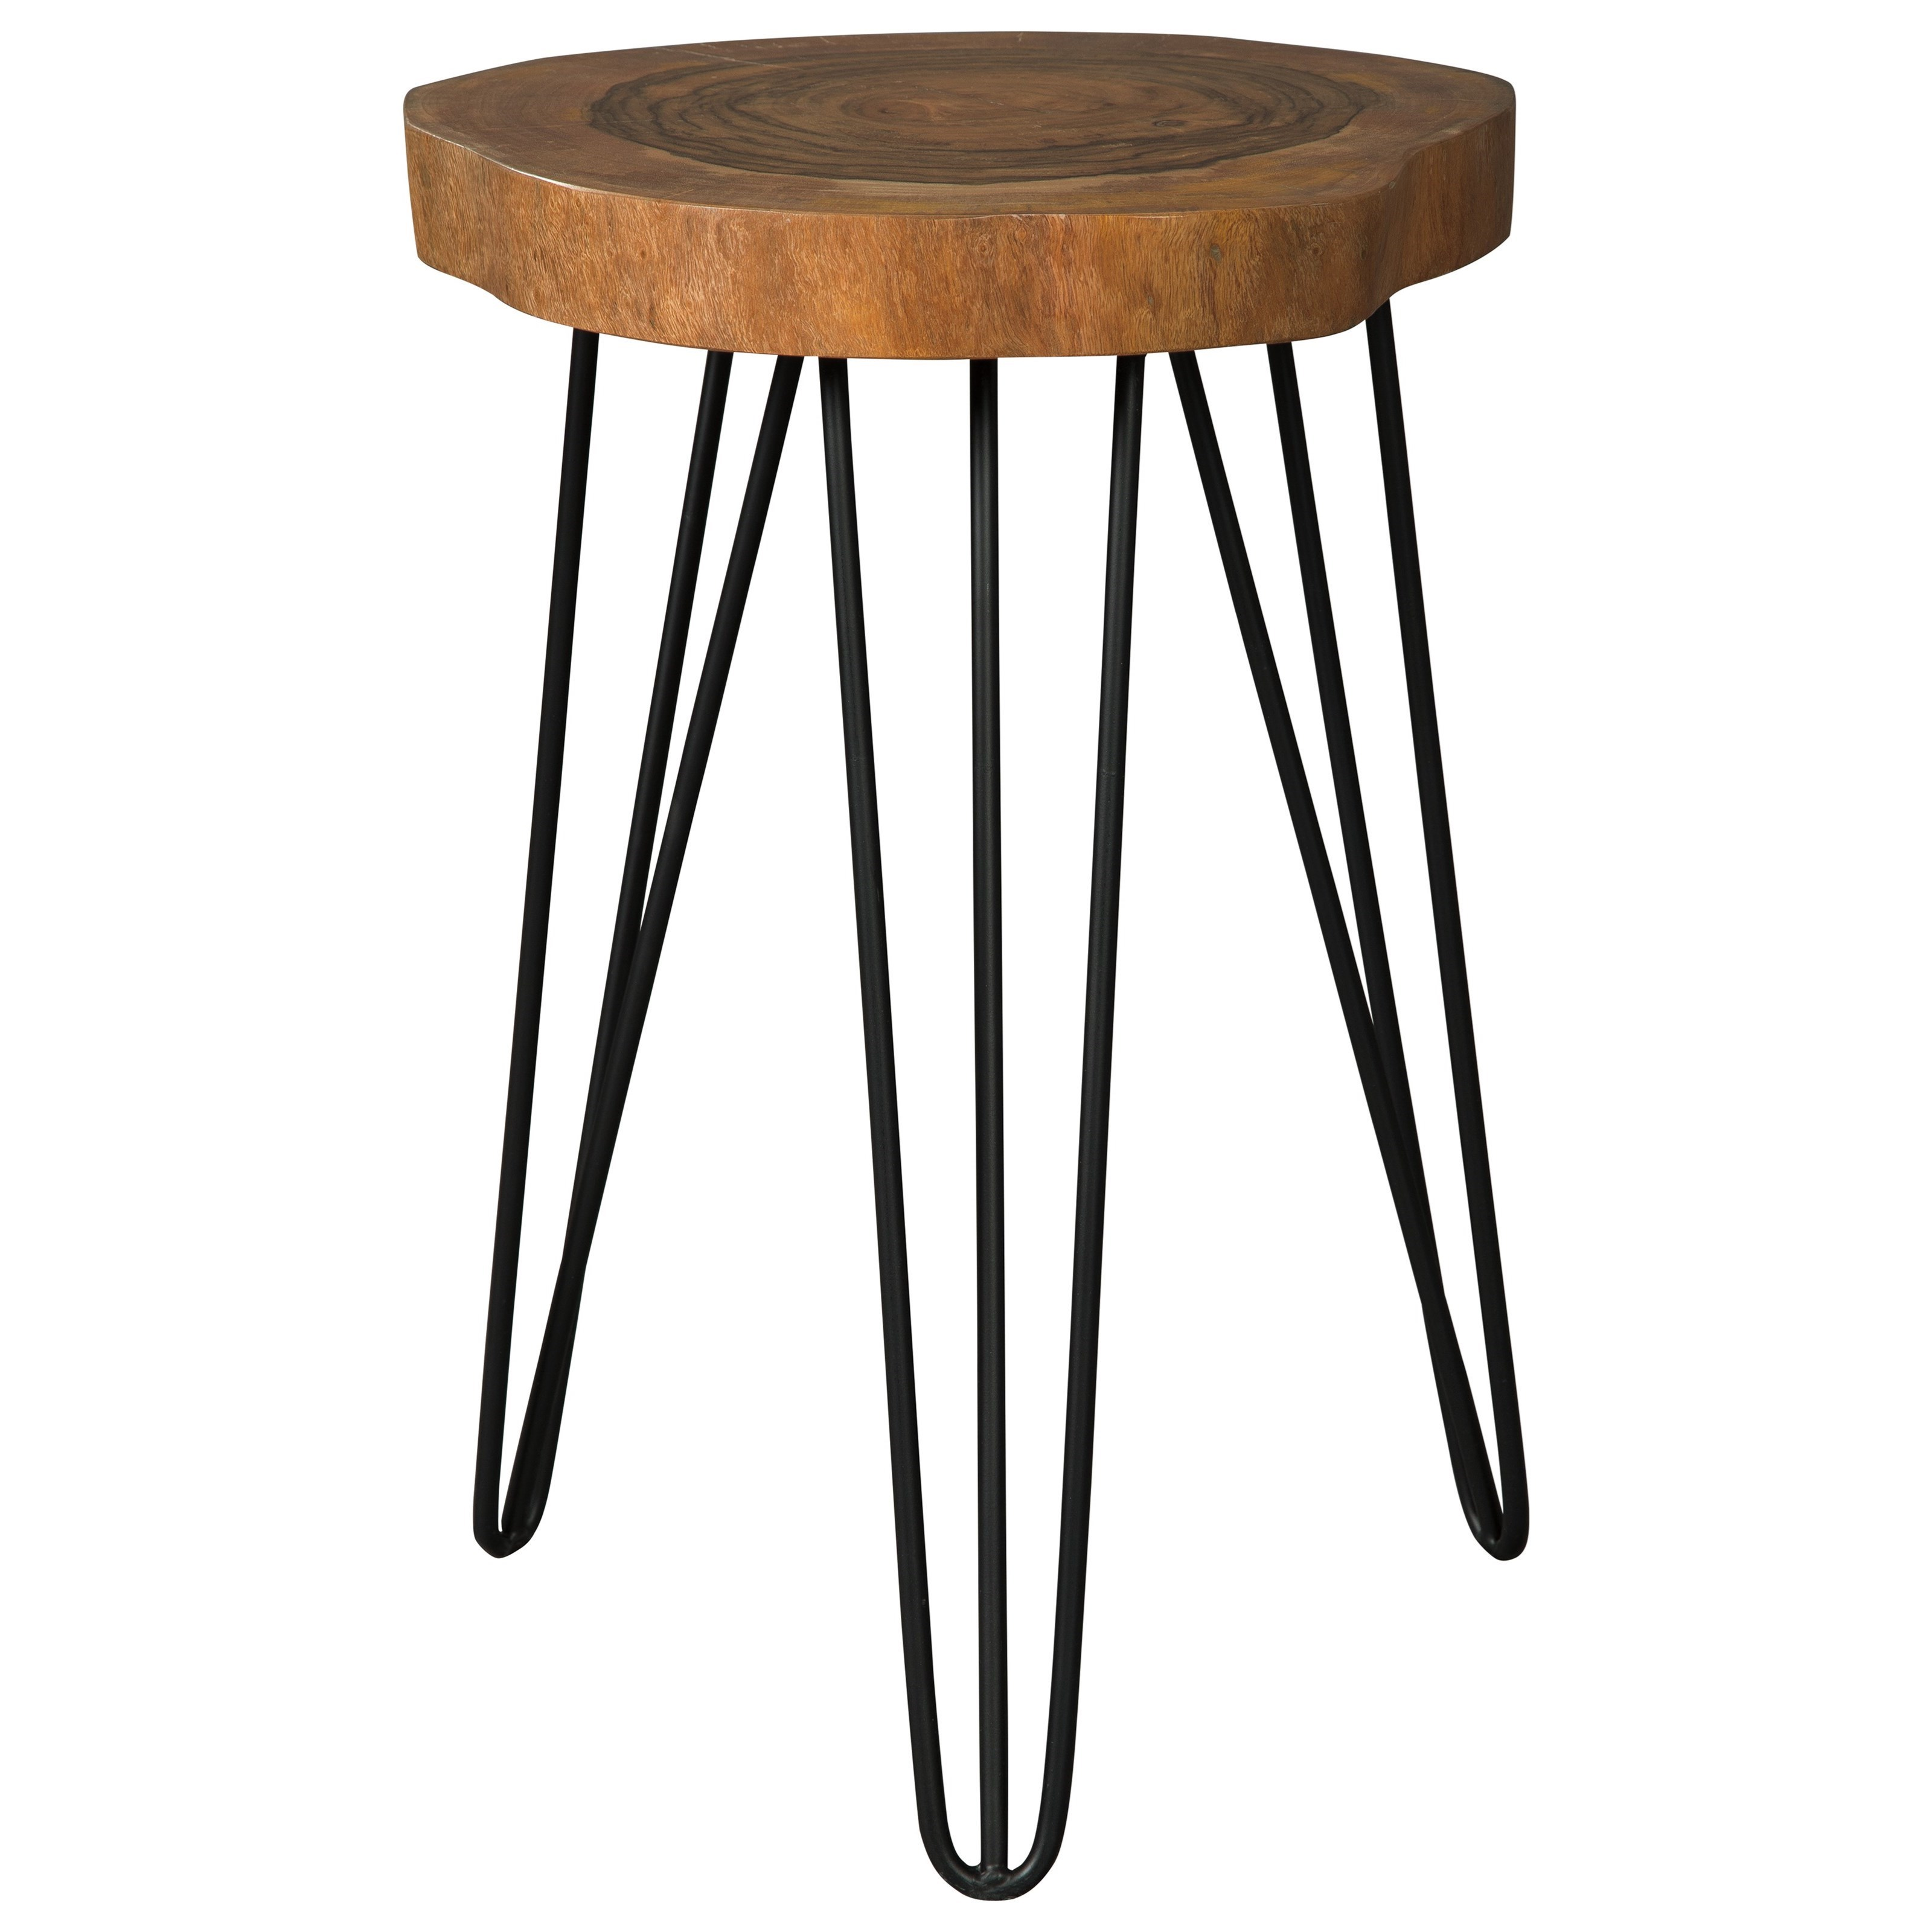 signature design ashley eversboro solid wood accent table with products color inch round covers rustic metal side modern sideboard odd coffee tables xmas tablecloths and runners